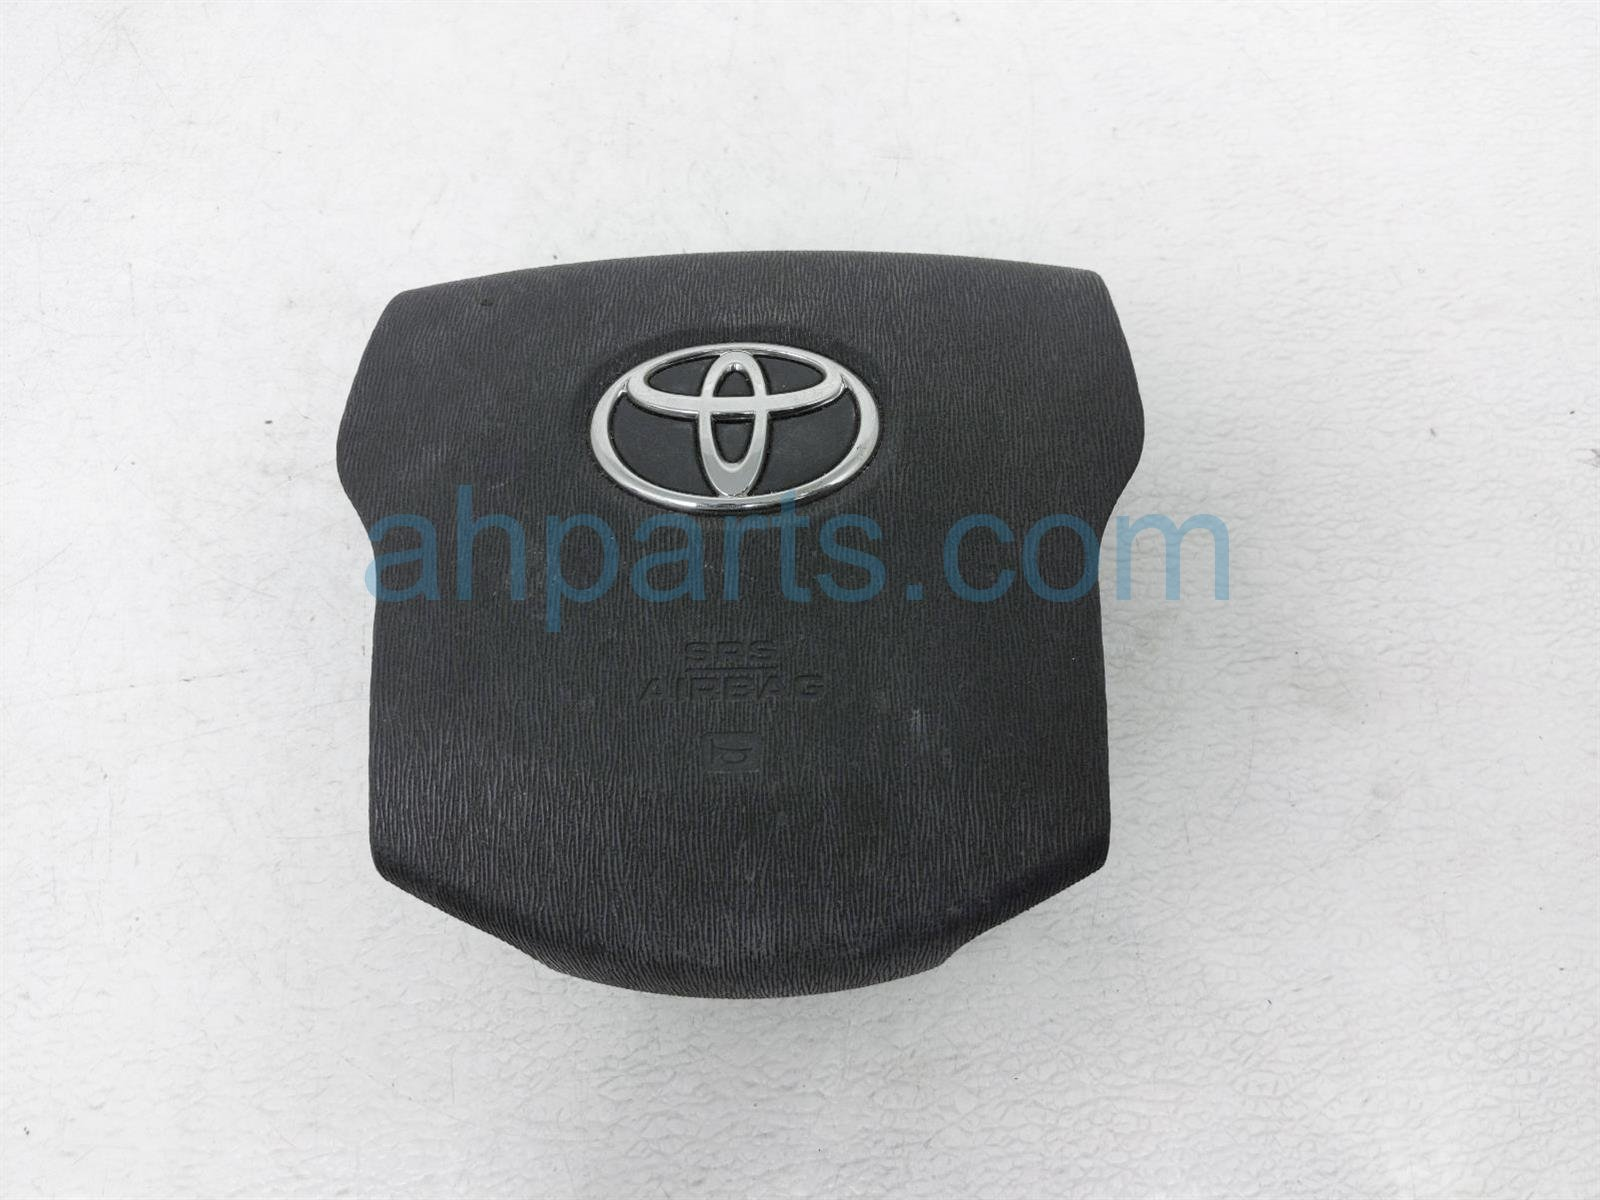 Sold 2009 Toyota Prius Driver Wheel Airbag 45130 47090 C0 Replacement